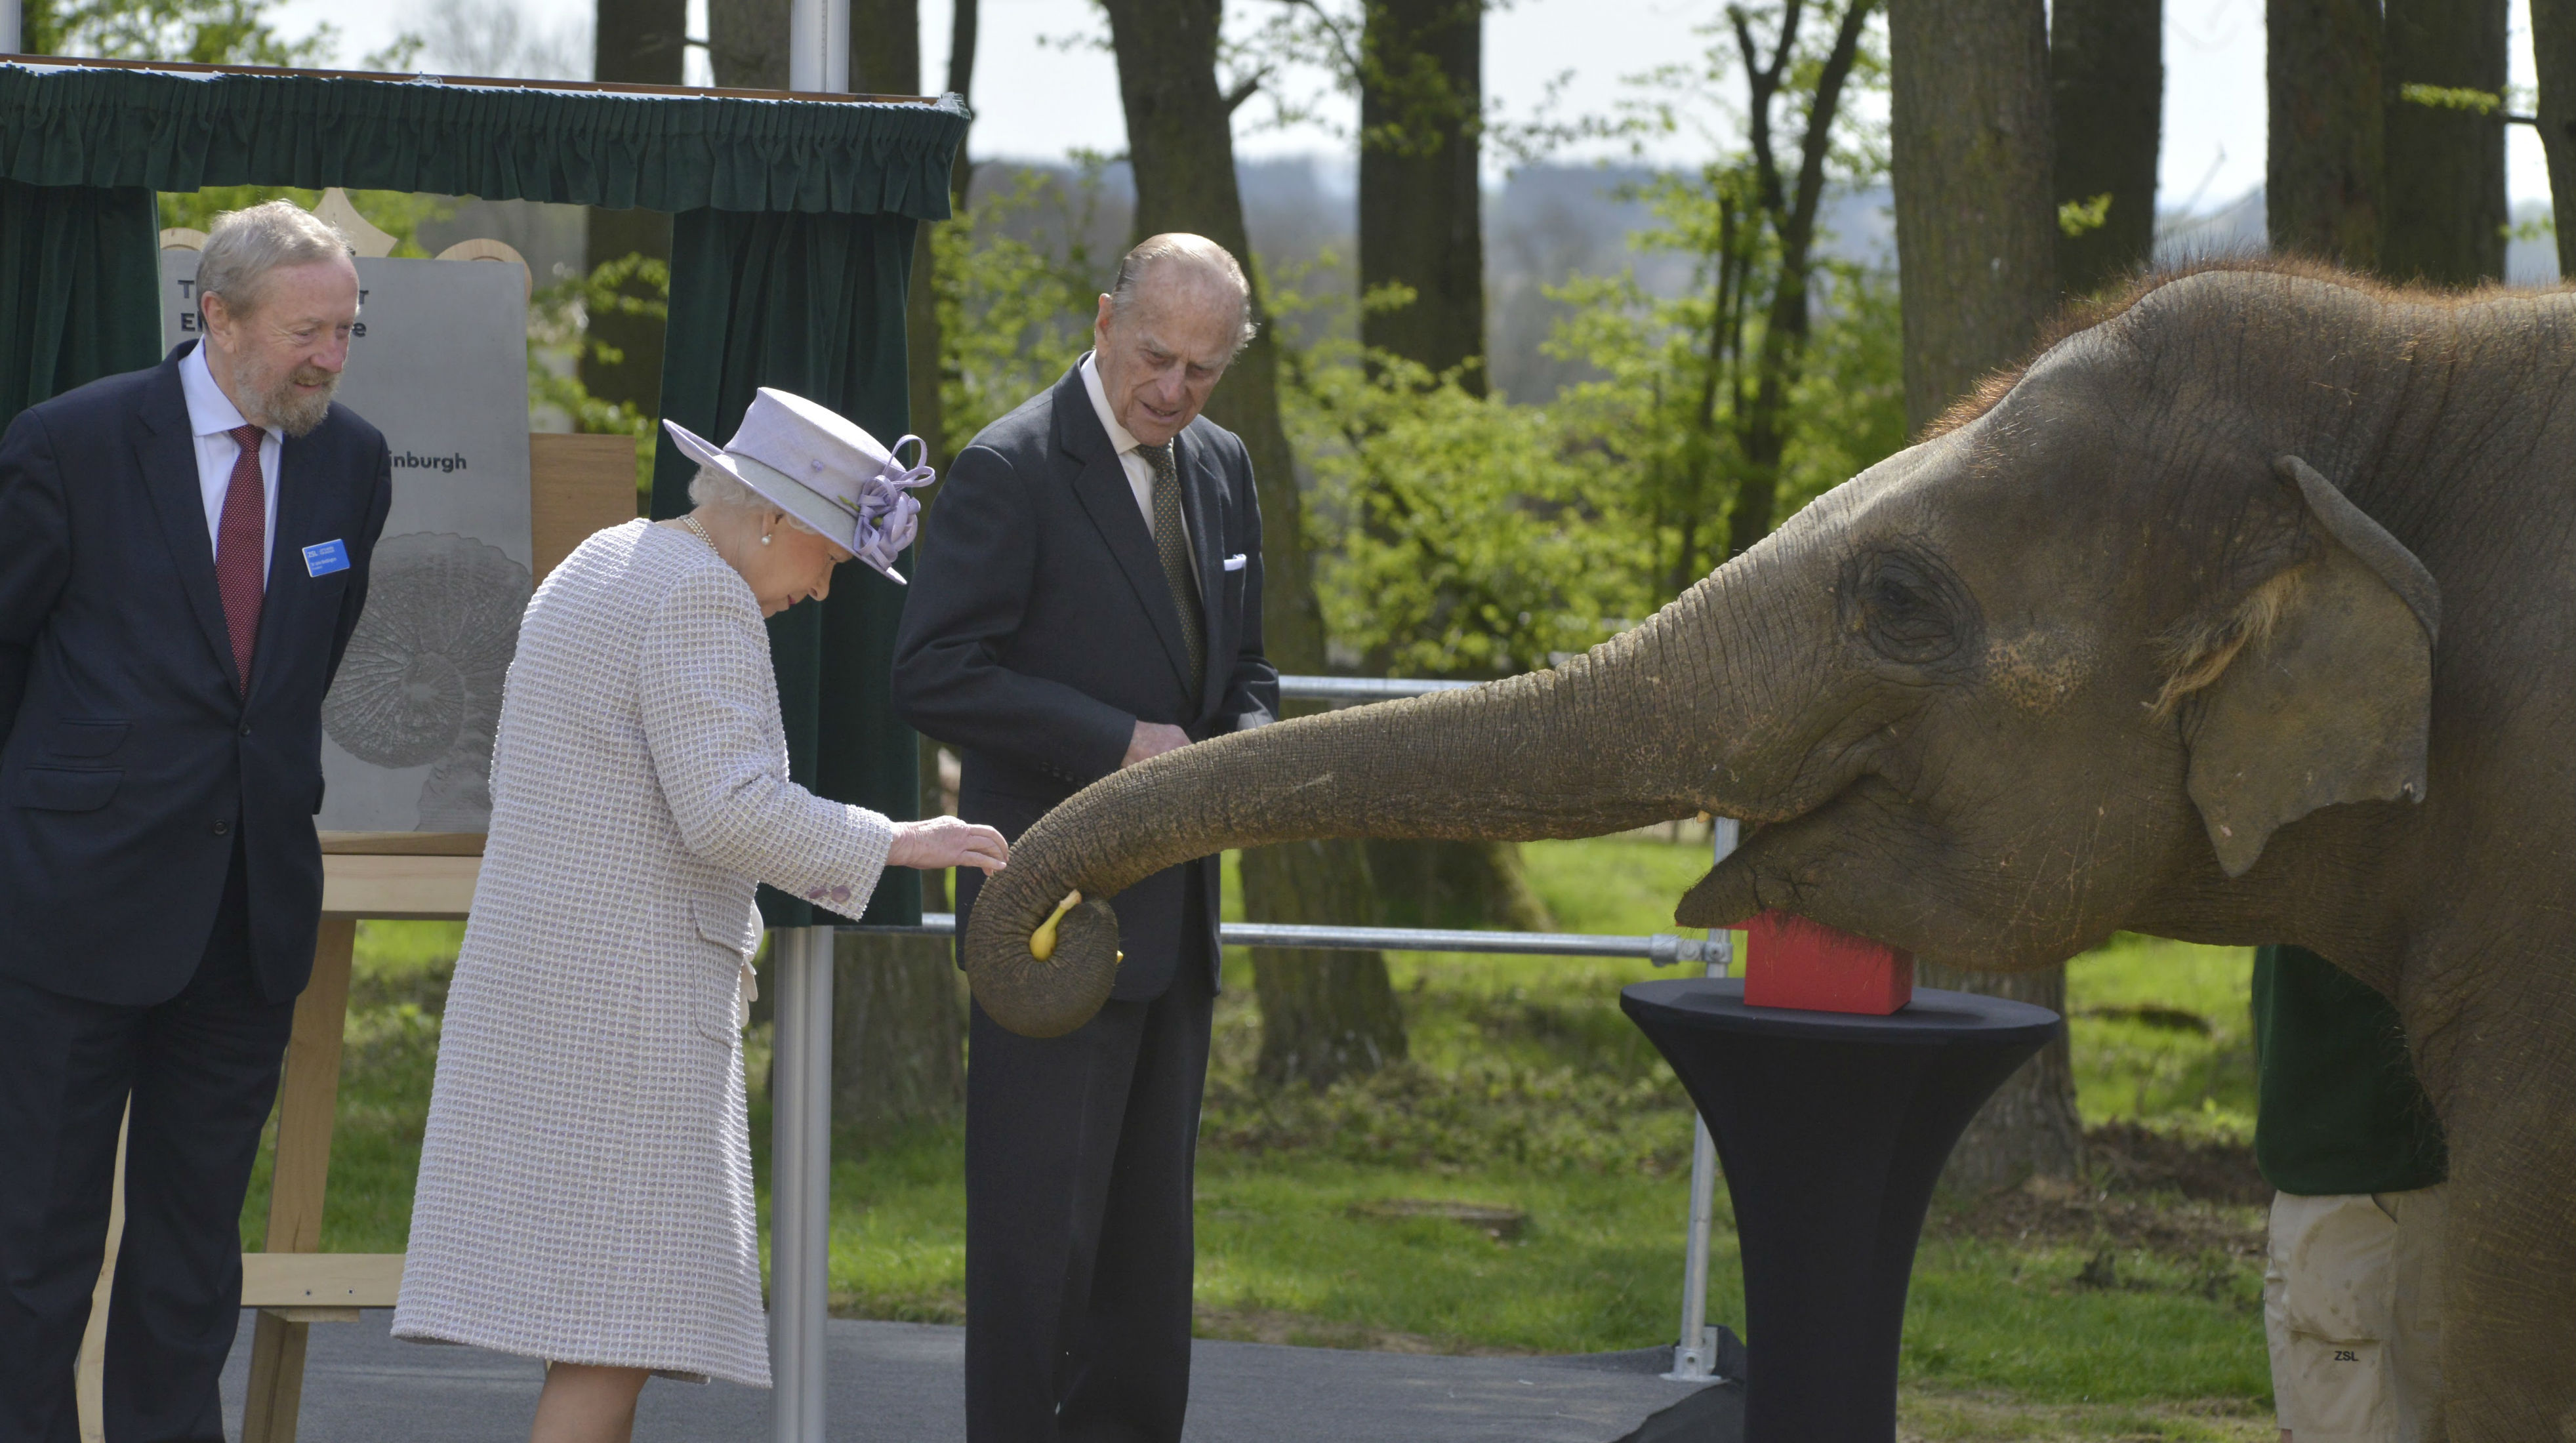 The Queen Helps Feed Elephants at Whipsnade Zoo picture